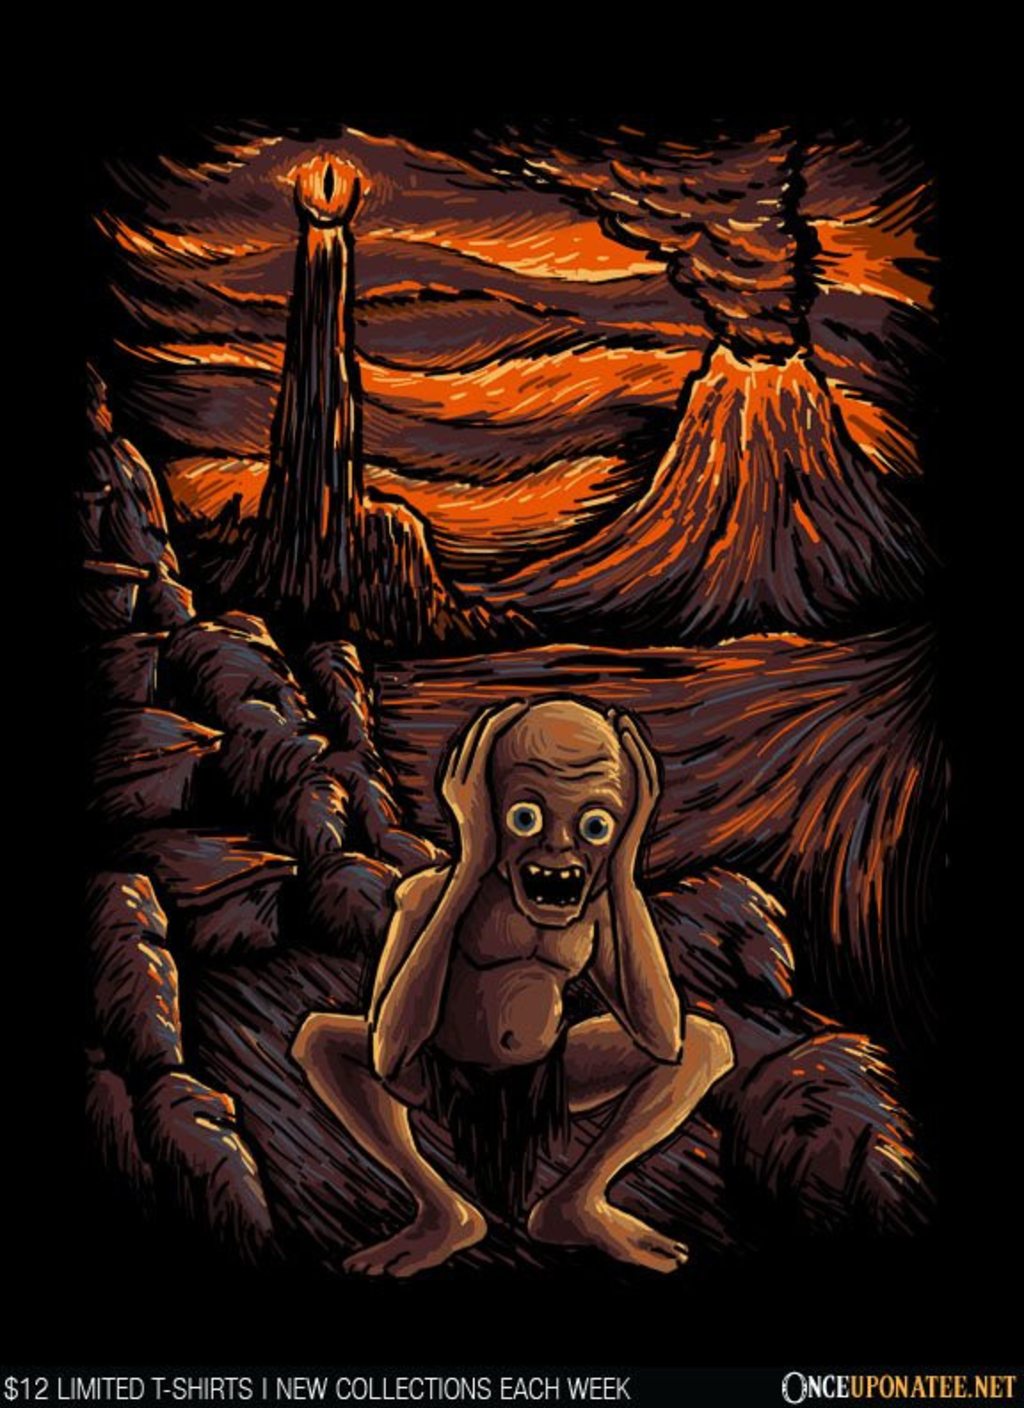 Once Upon a Tee: The Scream in Mordor